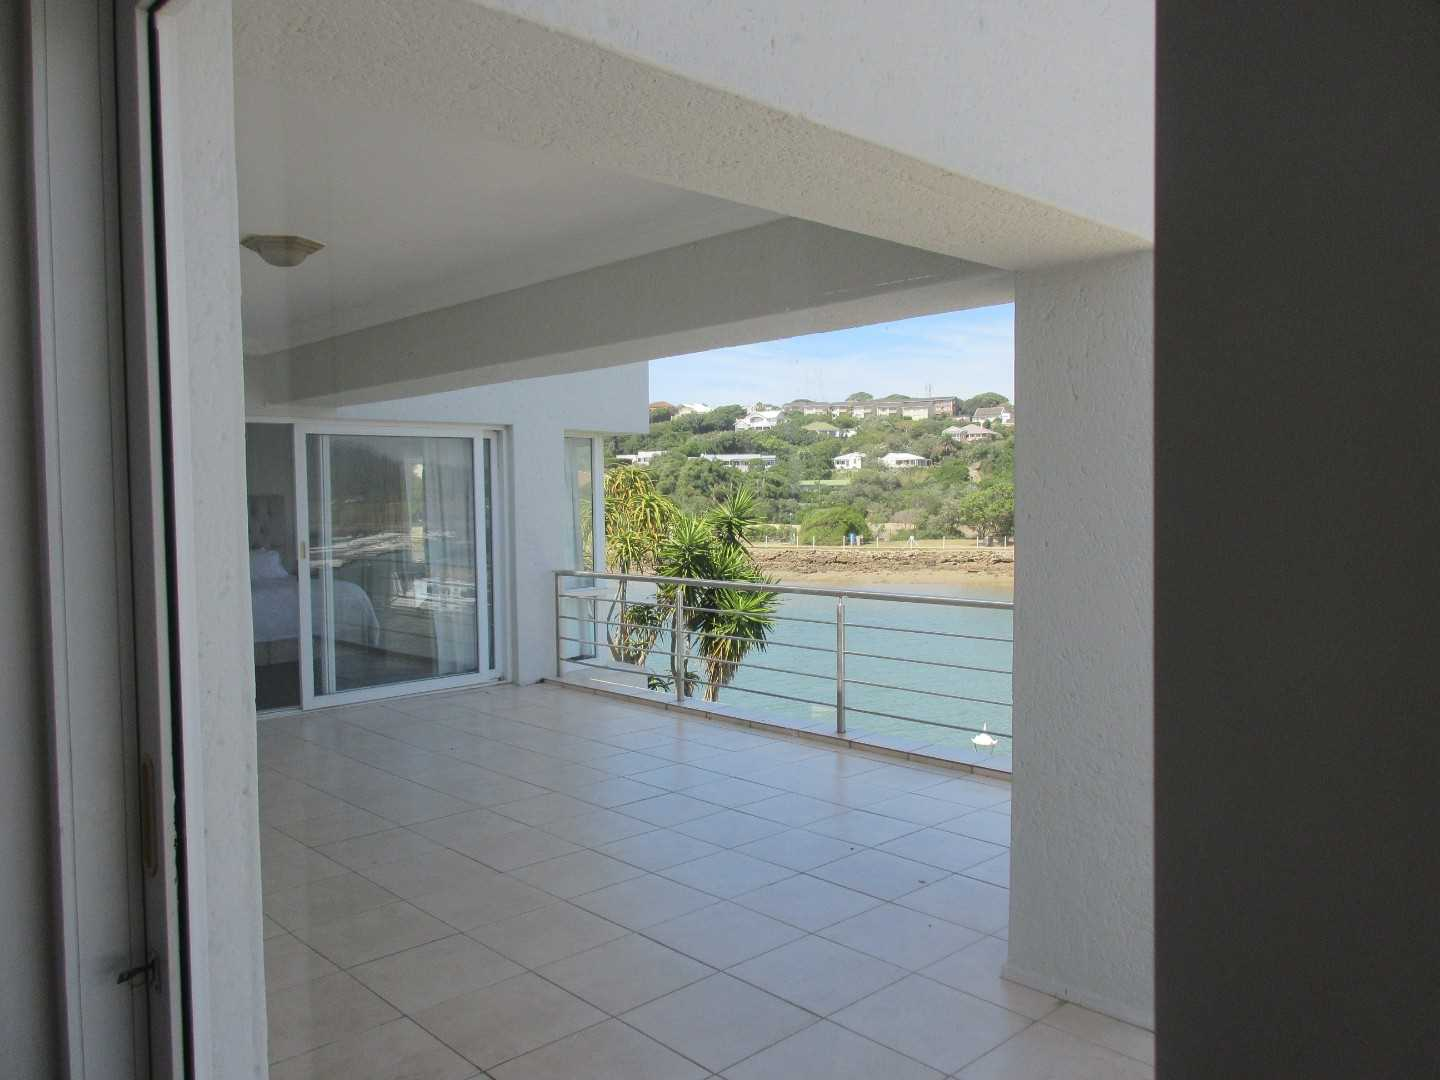 Balcony access from the bedrooms